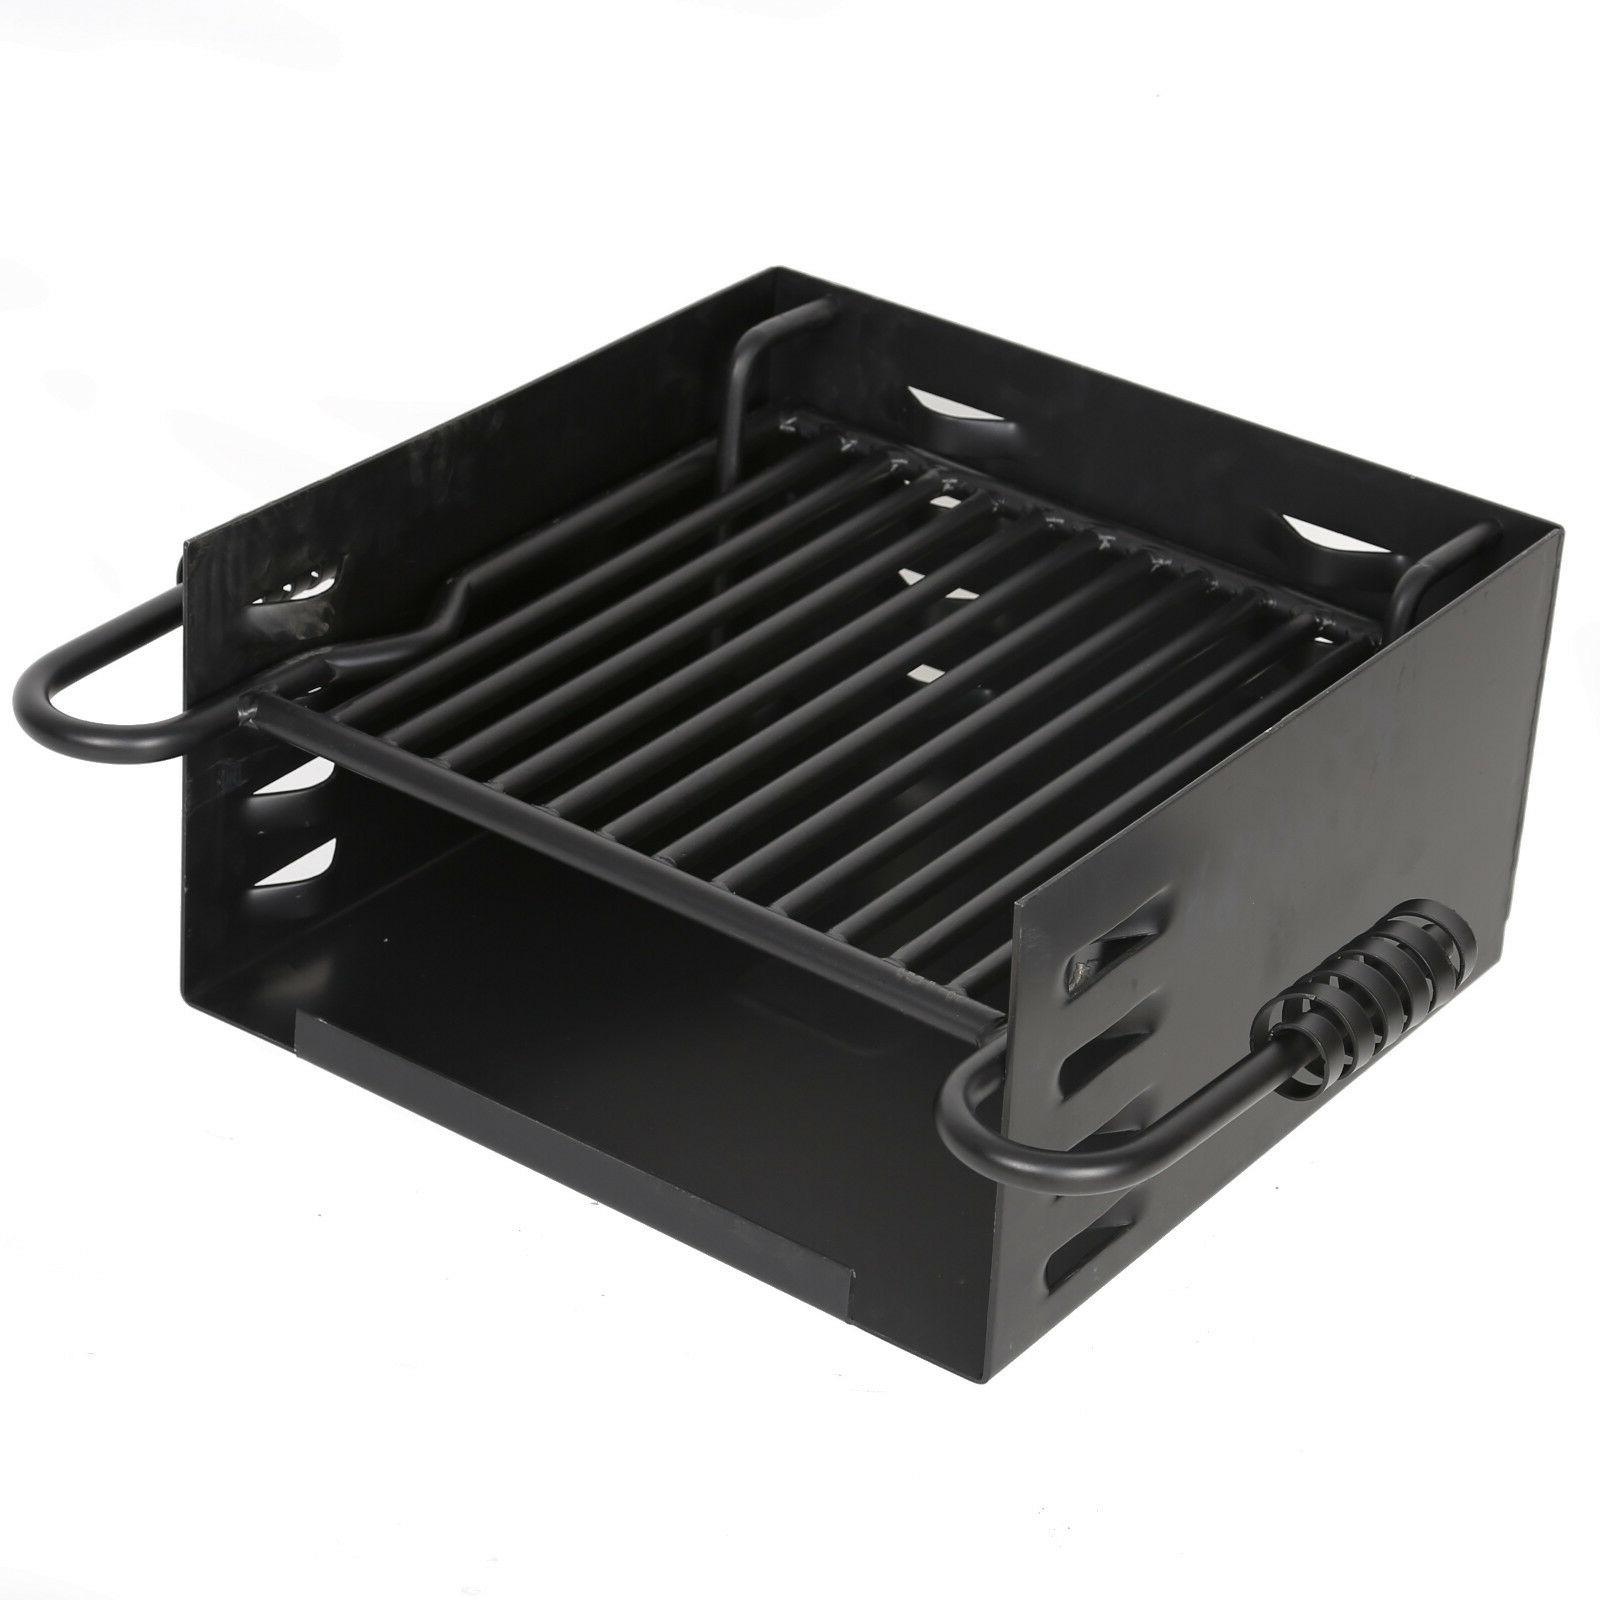 Outdoor Barbecue Patio Meat BBQ Backyard Camping